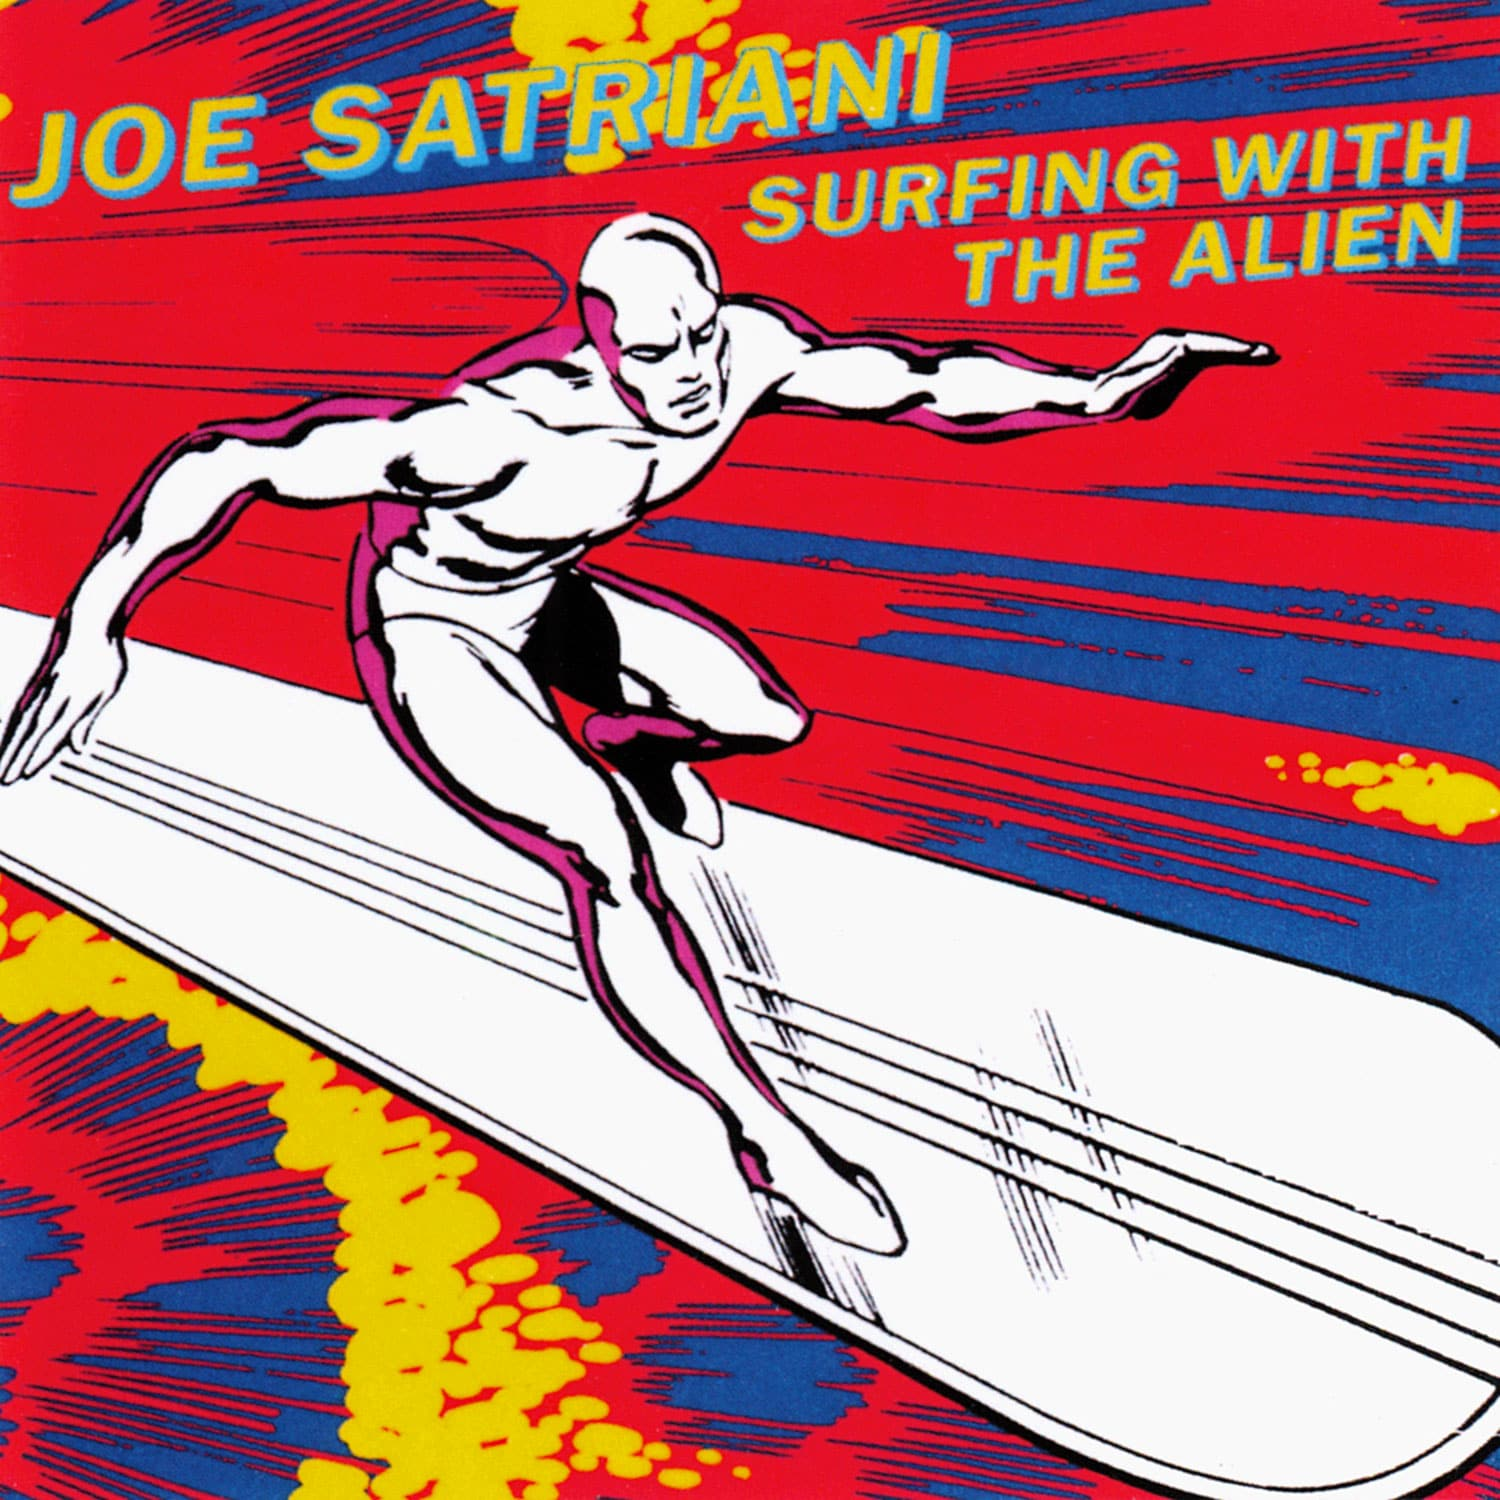 Surfing With The Alien Joe Satriani 1987 album CD